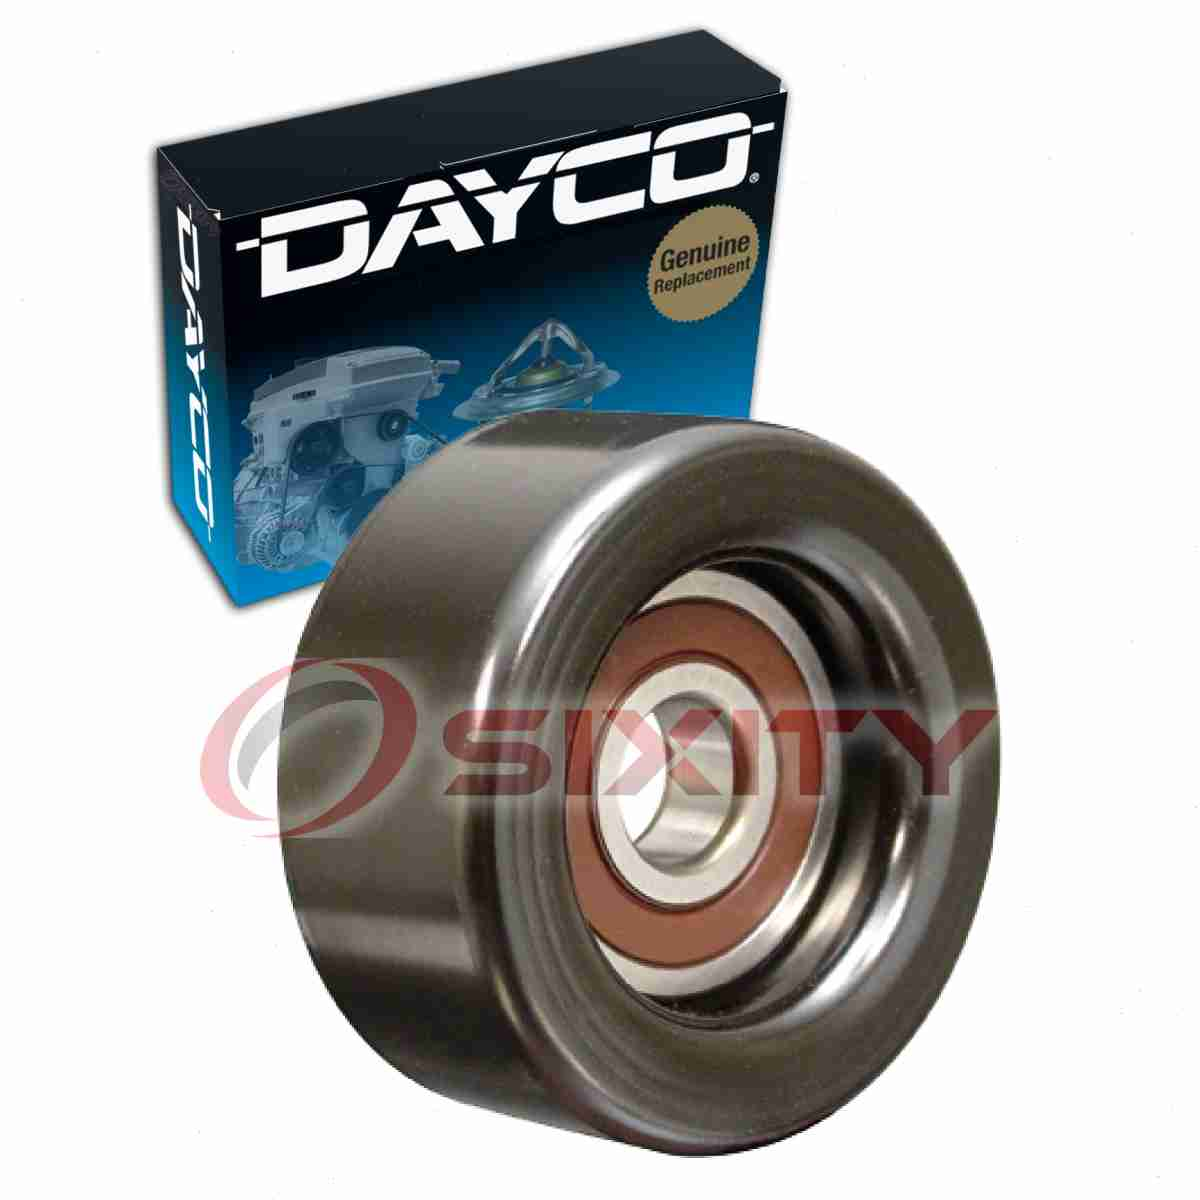 Dayco Drive Belt Pulley For 2015-2016 Acura TLX 3.5L V6